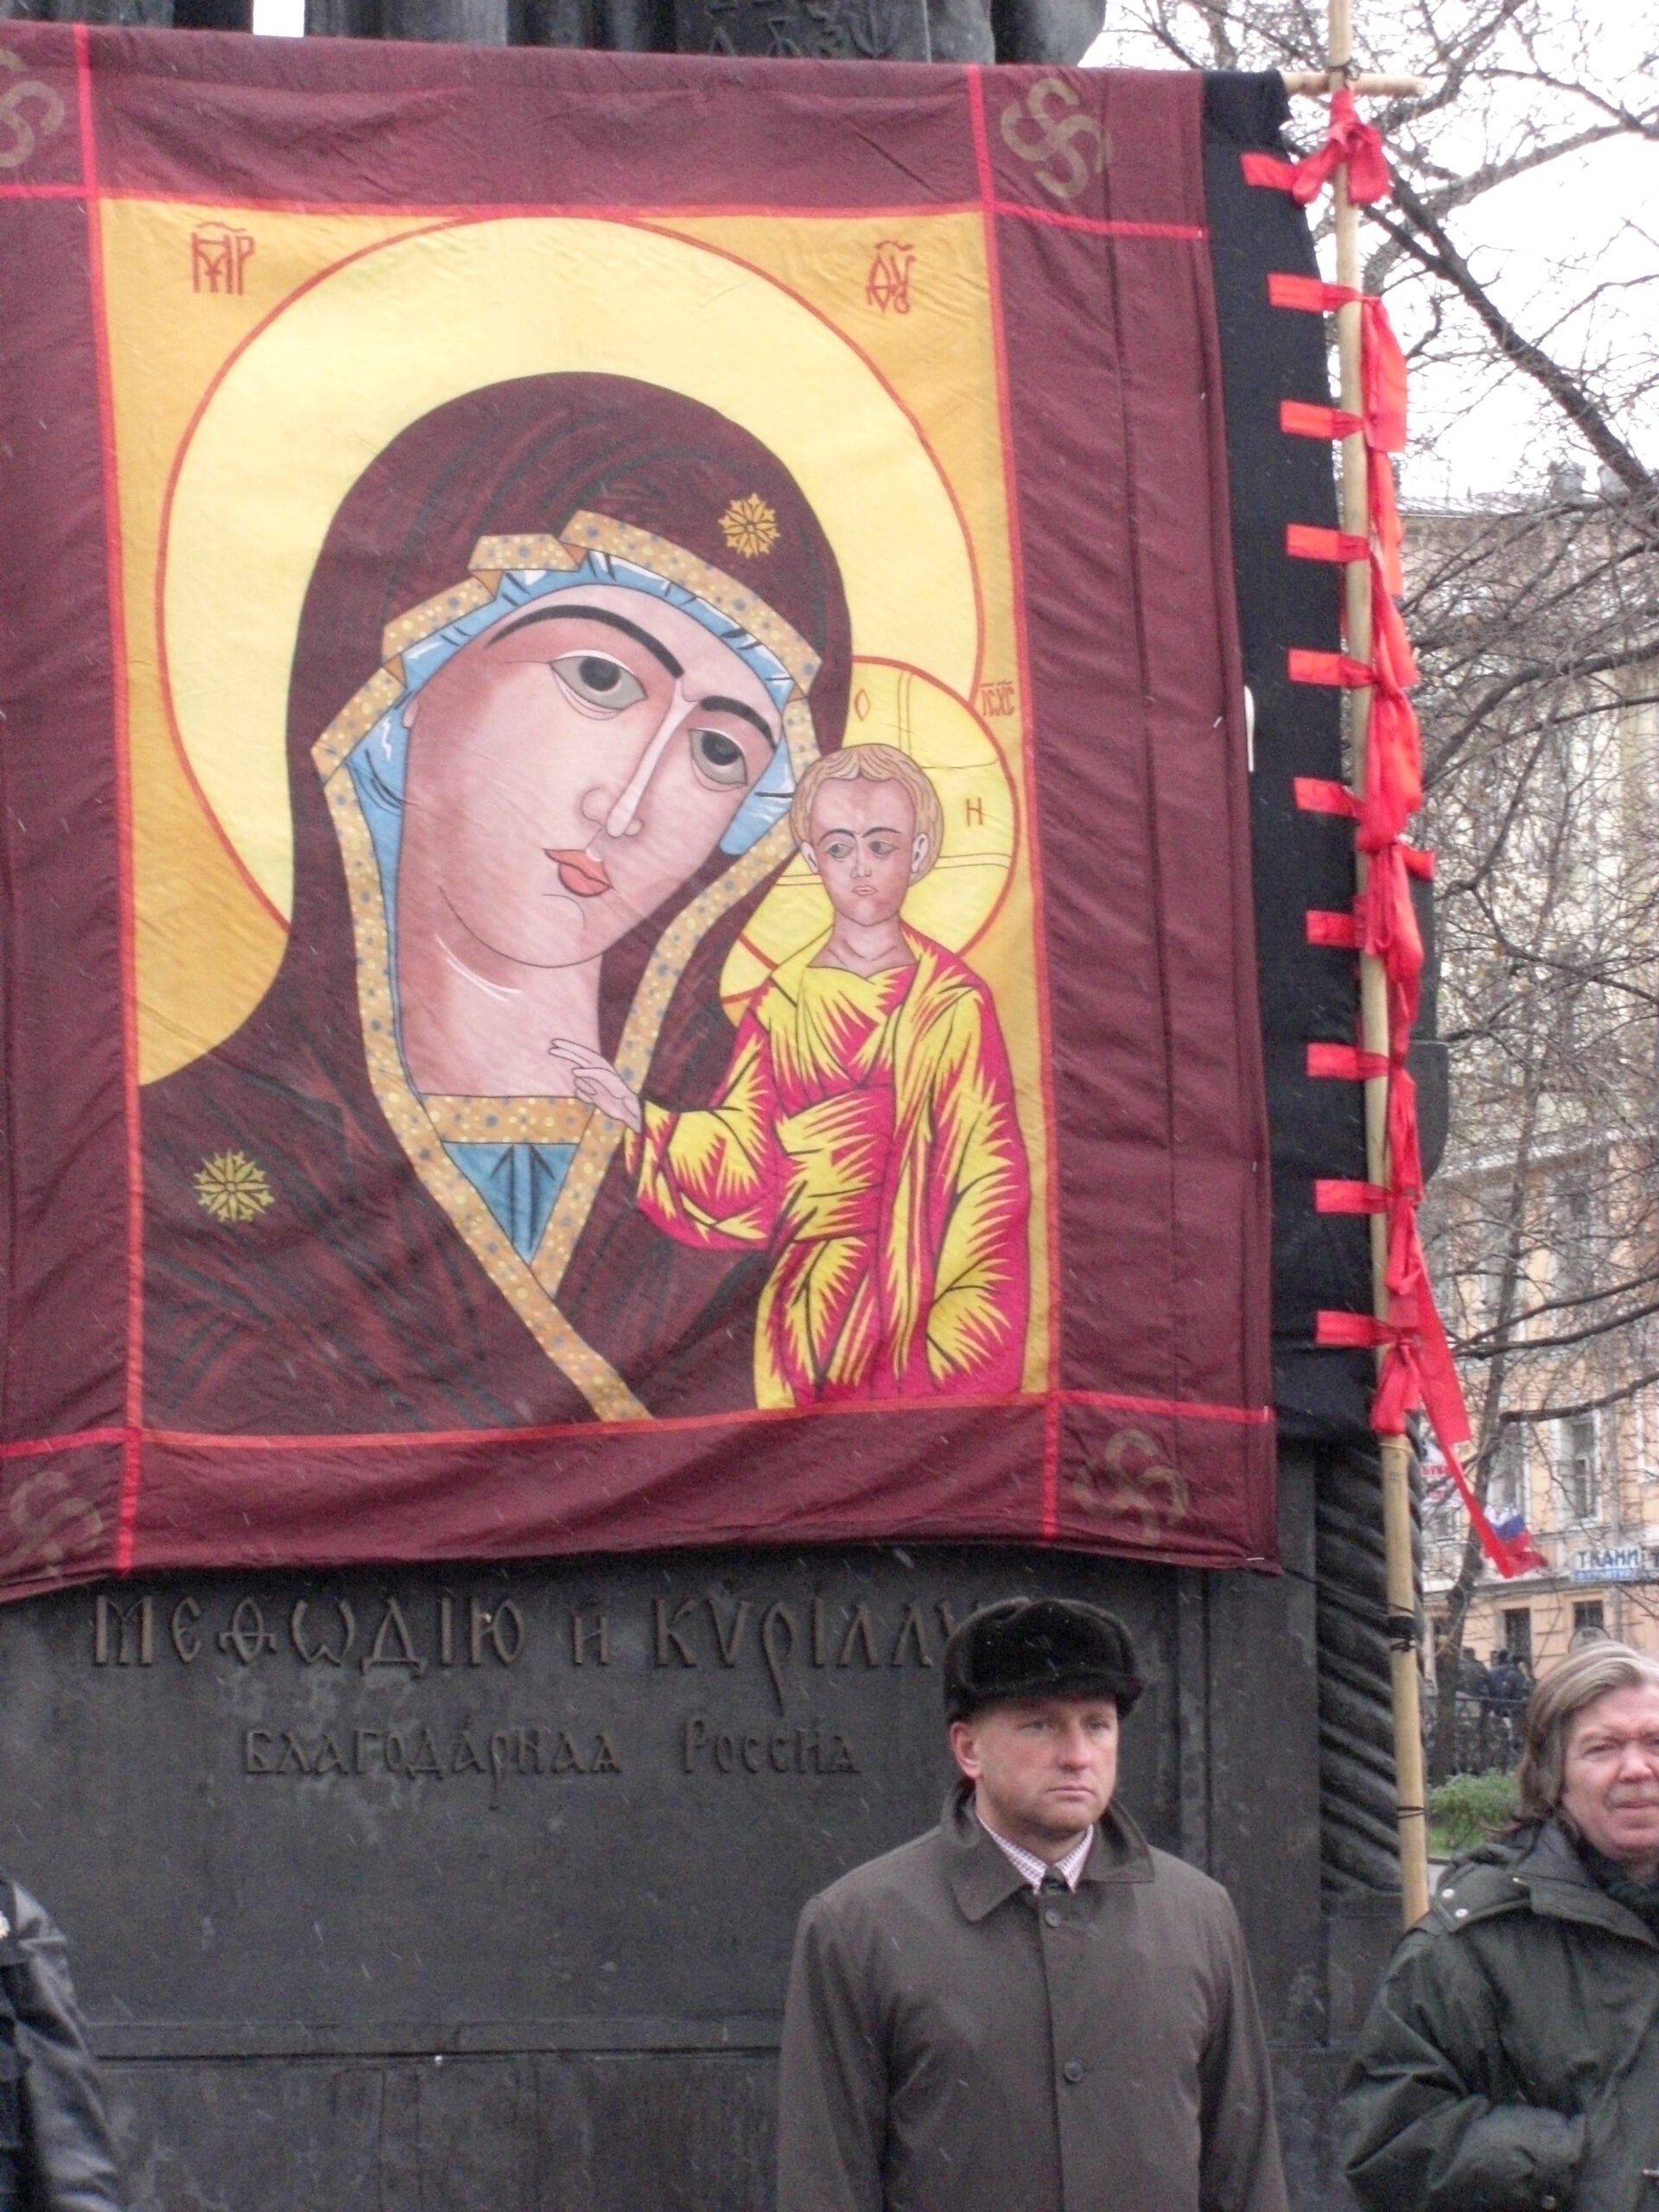 Marlene Laruelle – Ideological Complementary or Competition? The Kremlin, the Church, and the Monarchist Idea in Today's Russia